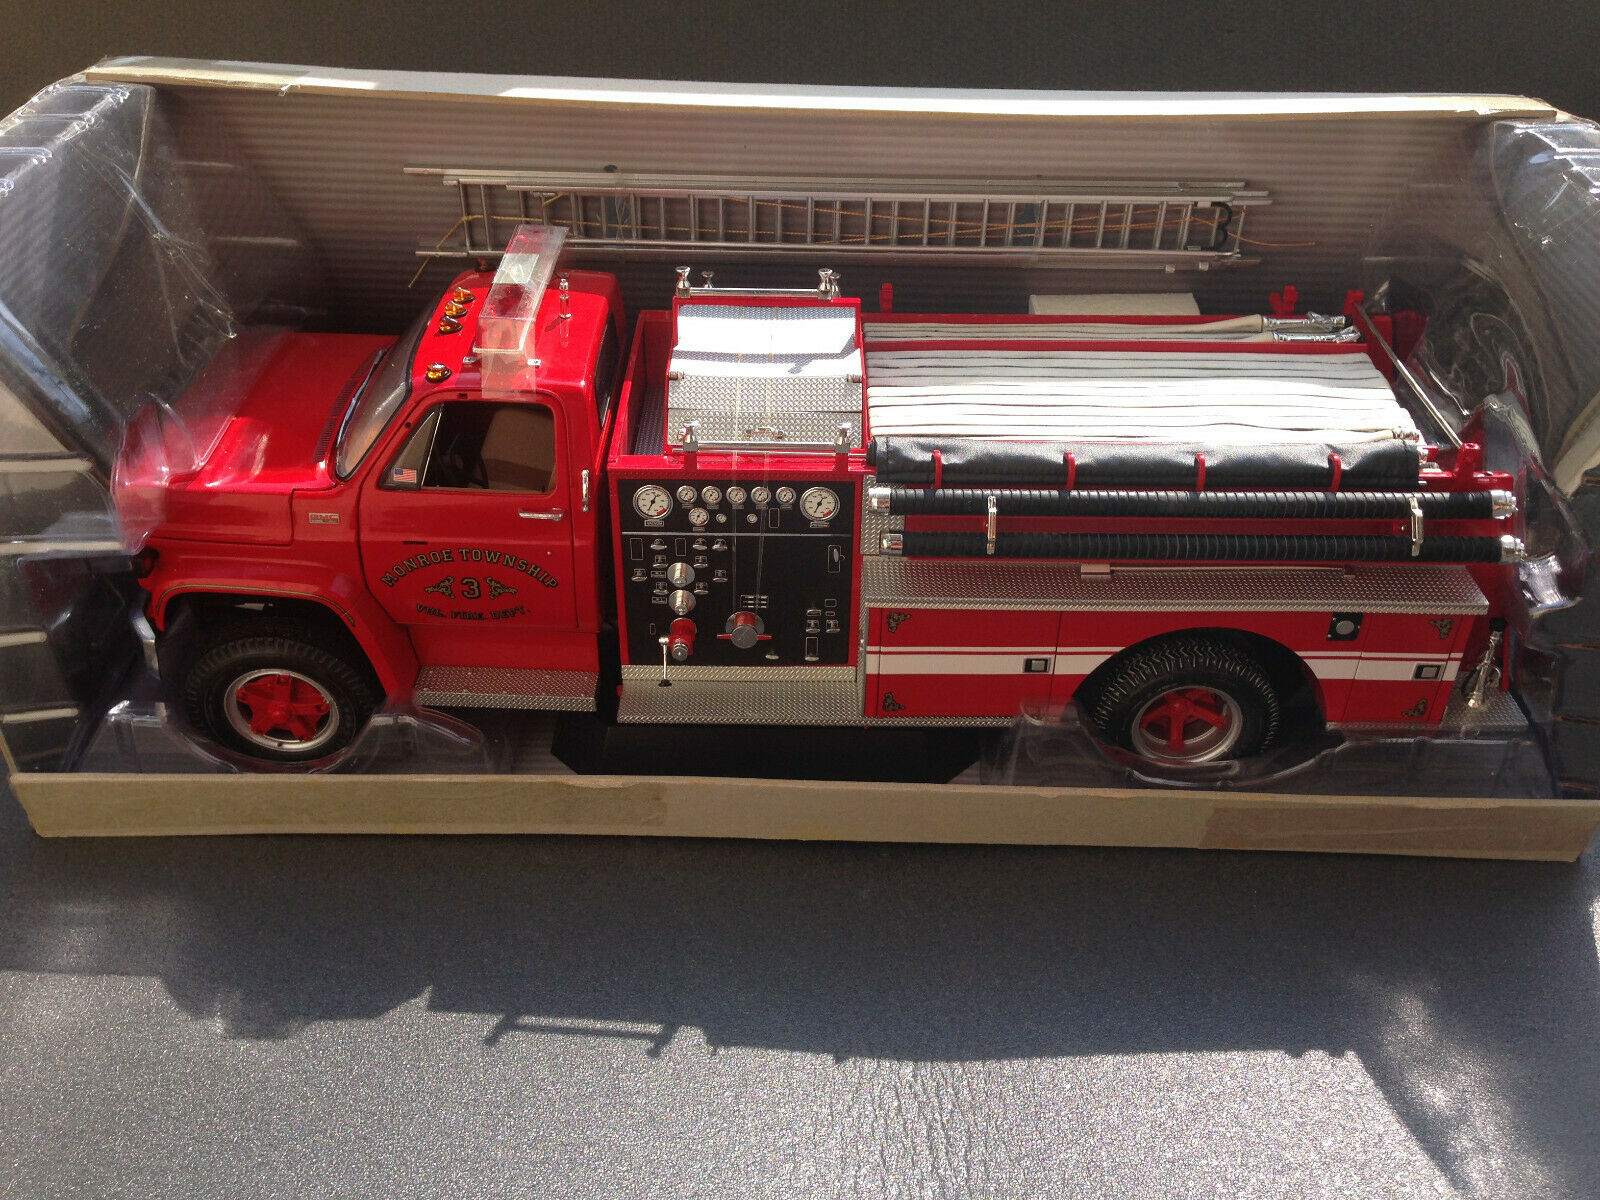 GMC Heavy-Duty Fire Truck Highway 61 Fire Engine 1 16 + 4 Figures 1 18 New in Original Box